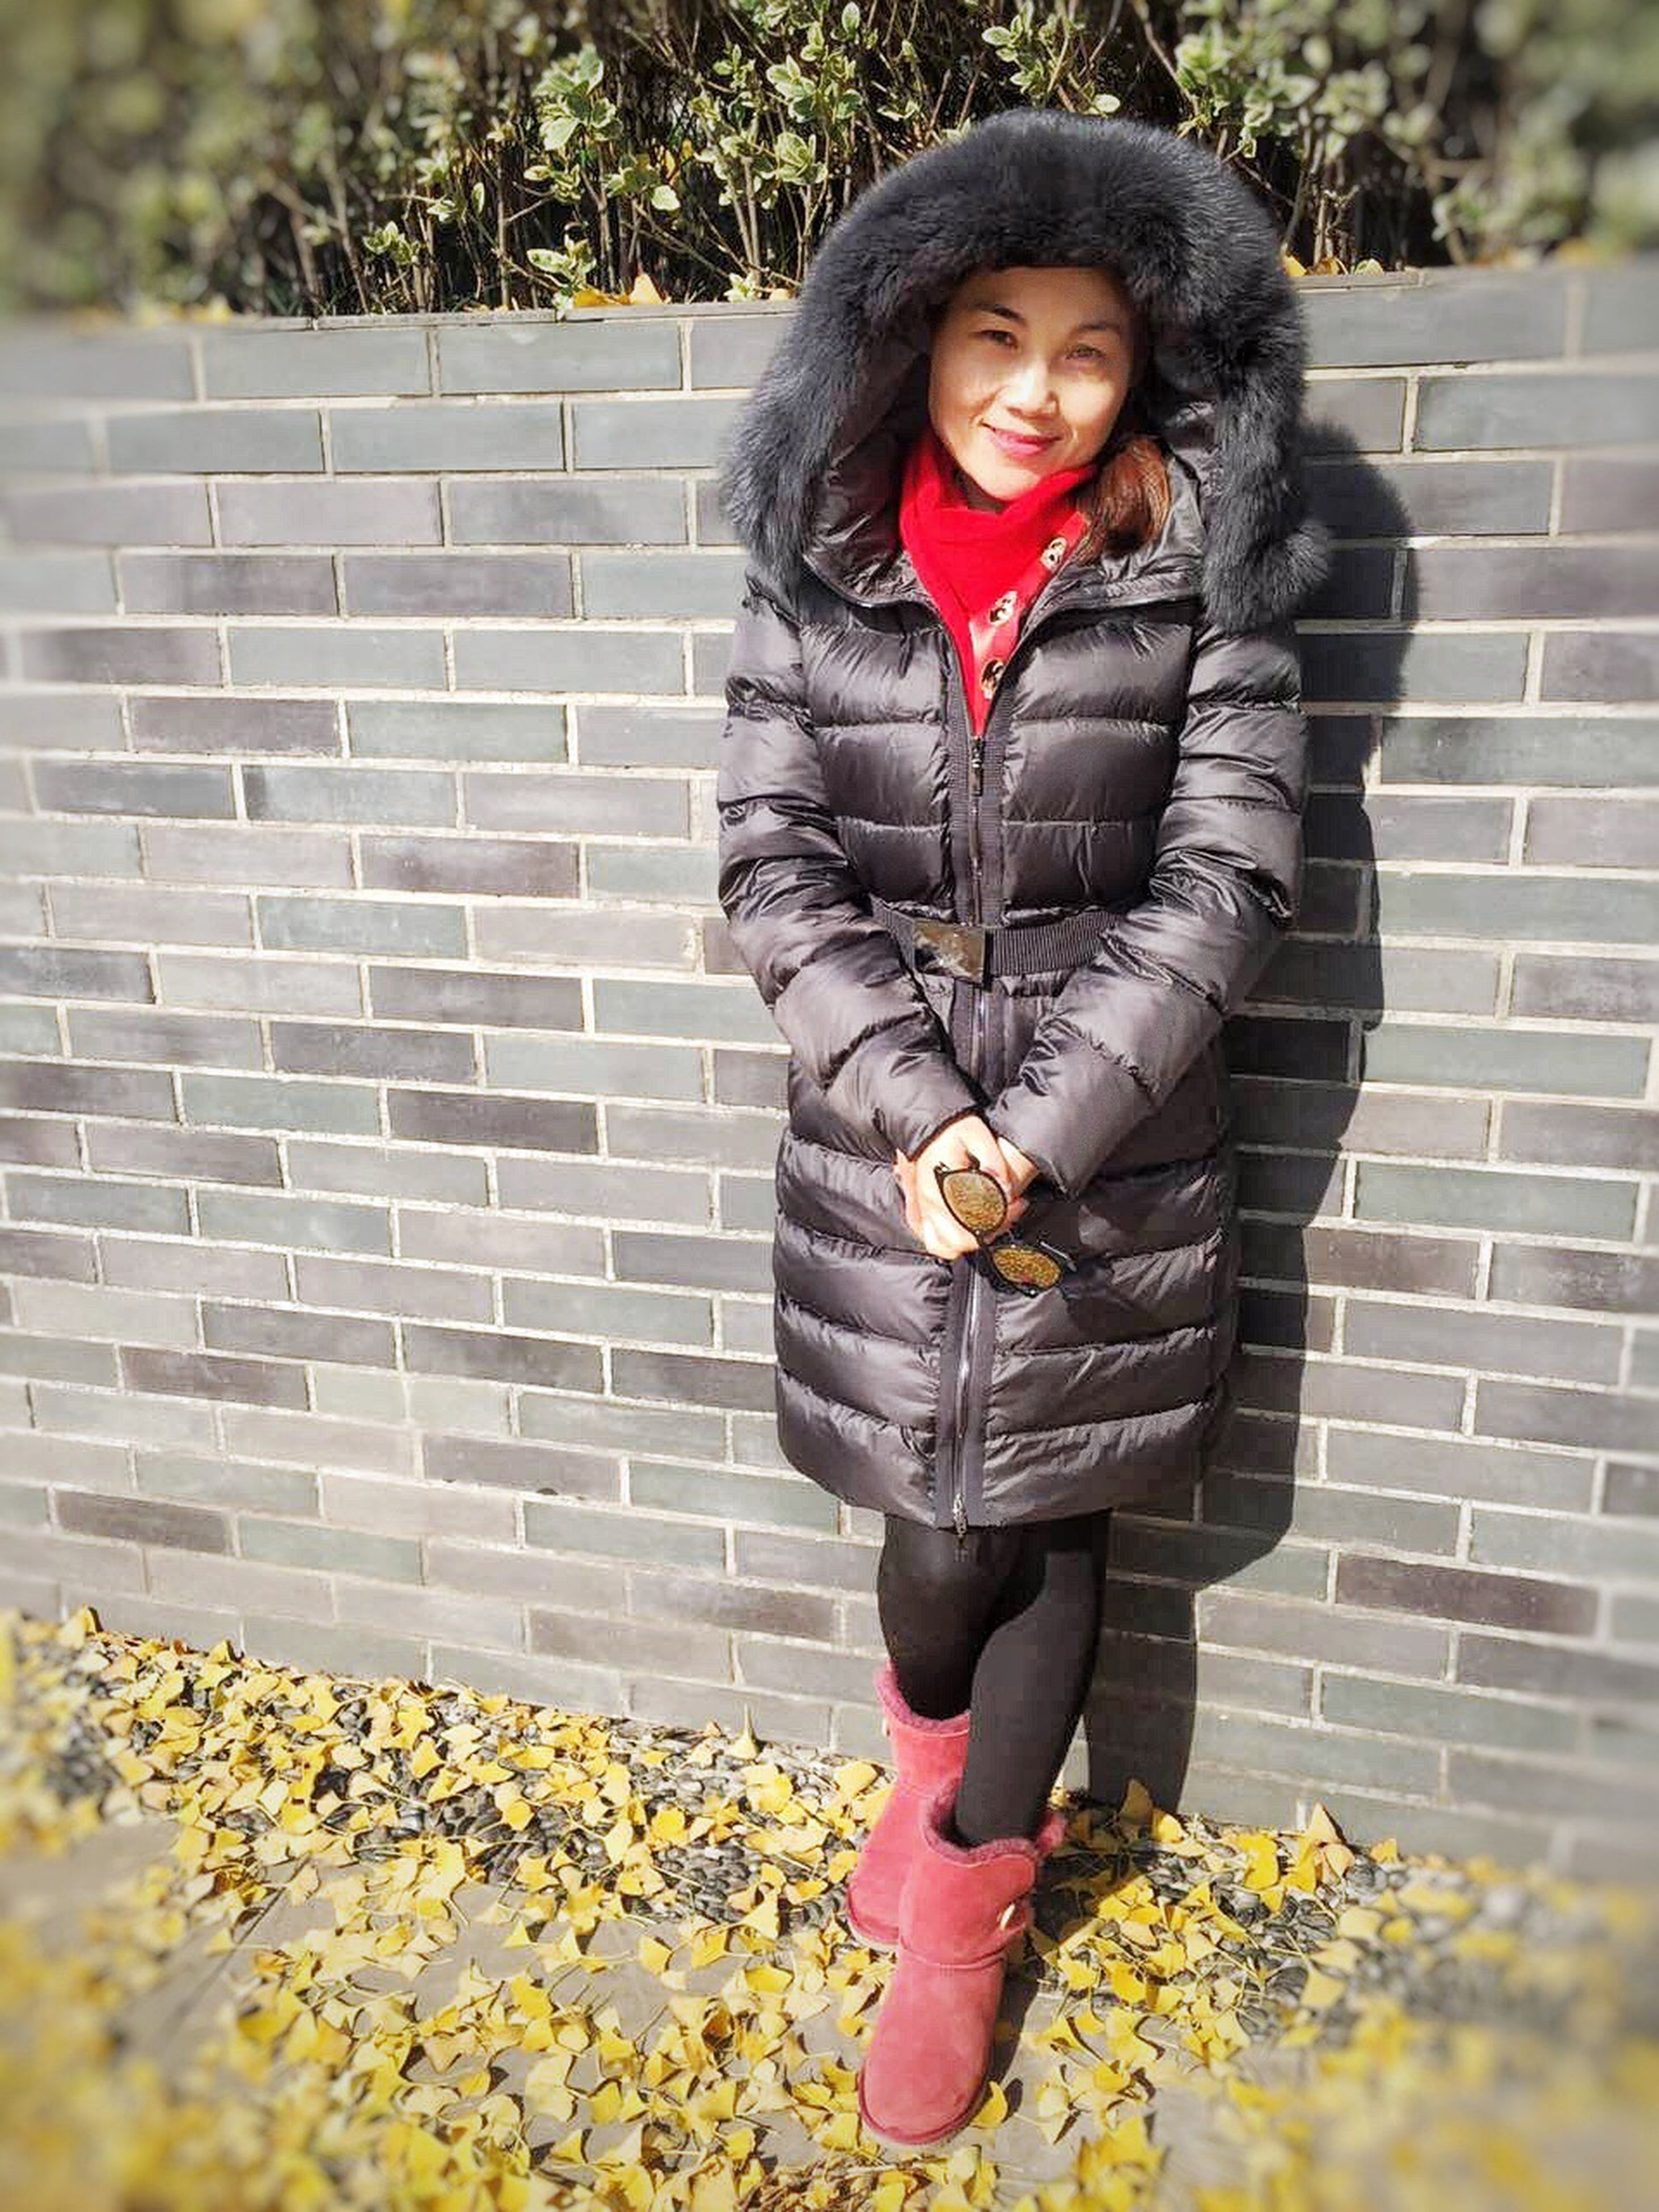 person, casual clothing, lifestyles, front view, young adult, standing, full length, looking at camera, portrait, leisure activity, young women, smiling, holding, building exterior, three quarter length, brick wall